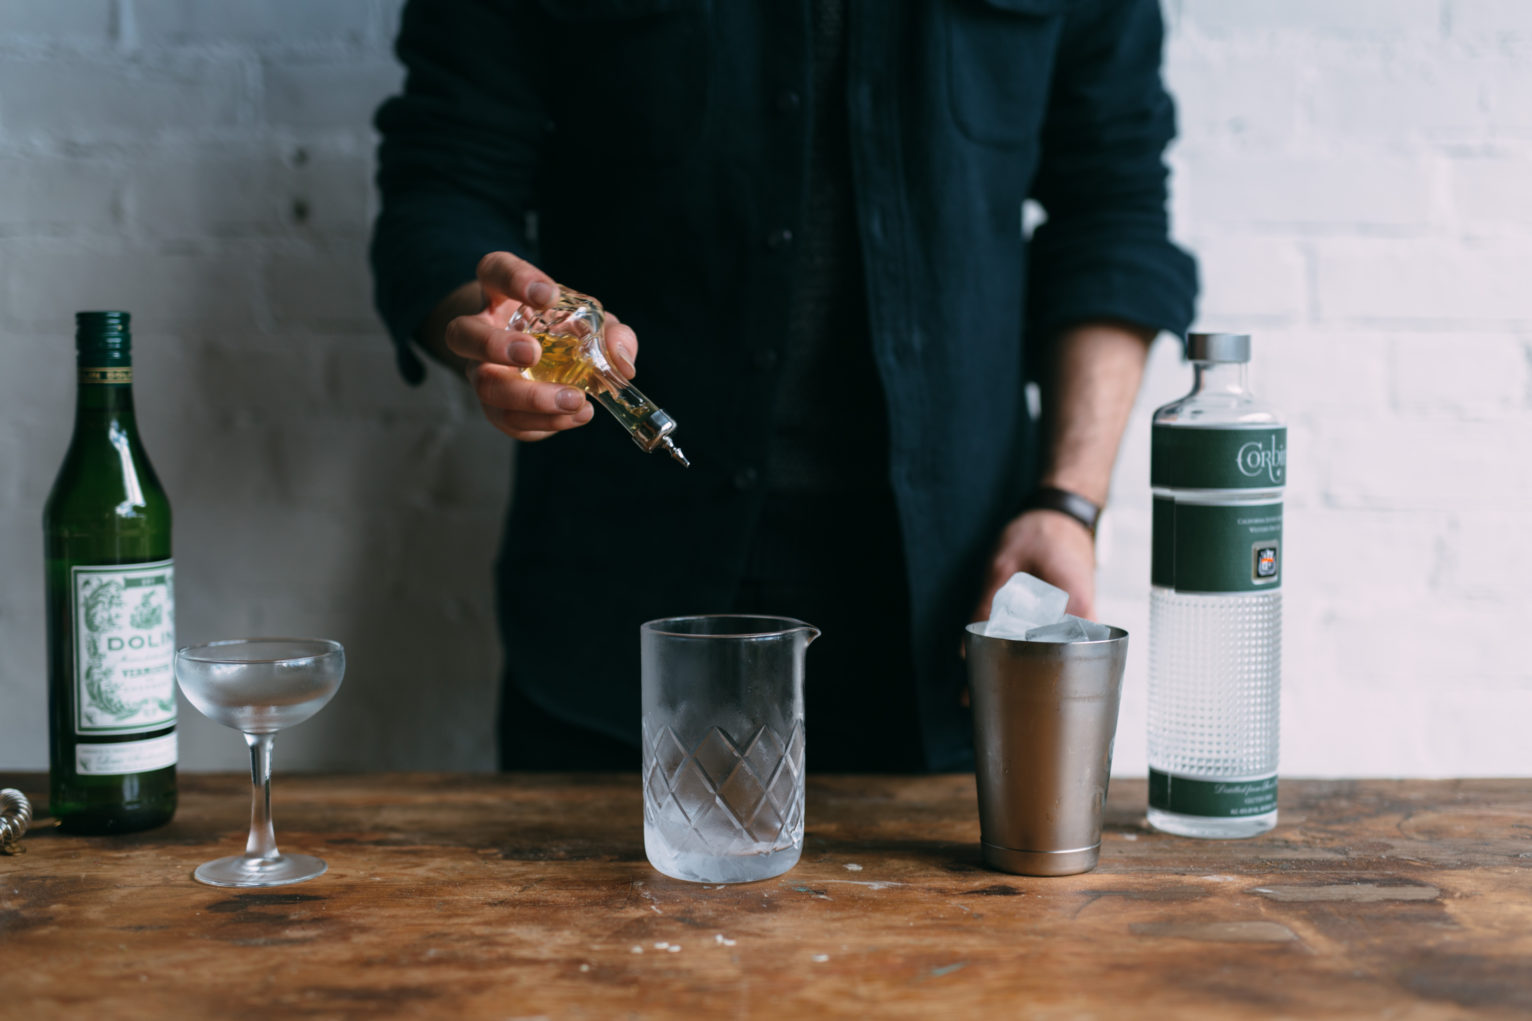 Adding a dash of bitters